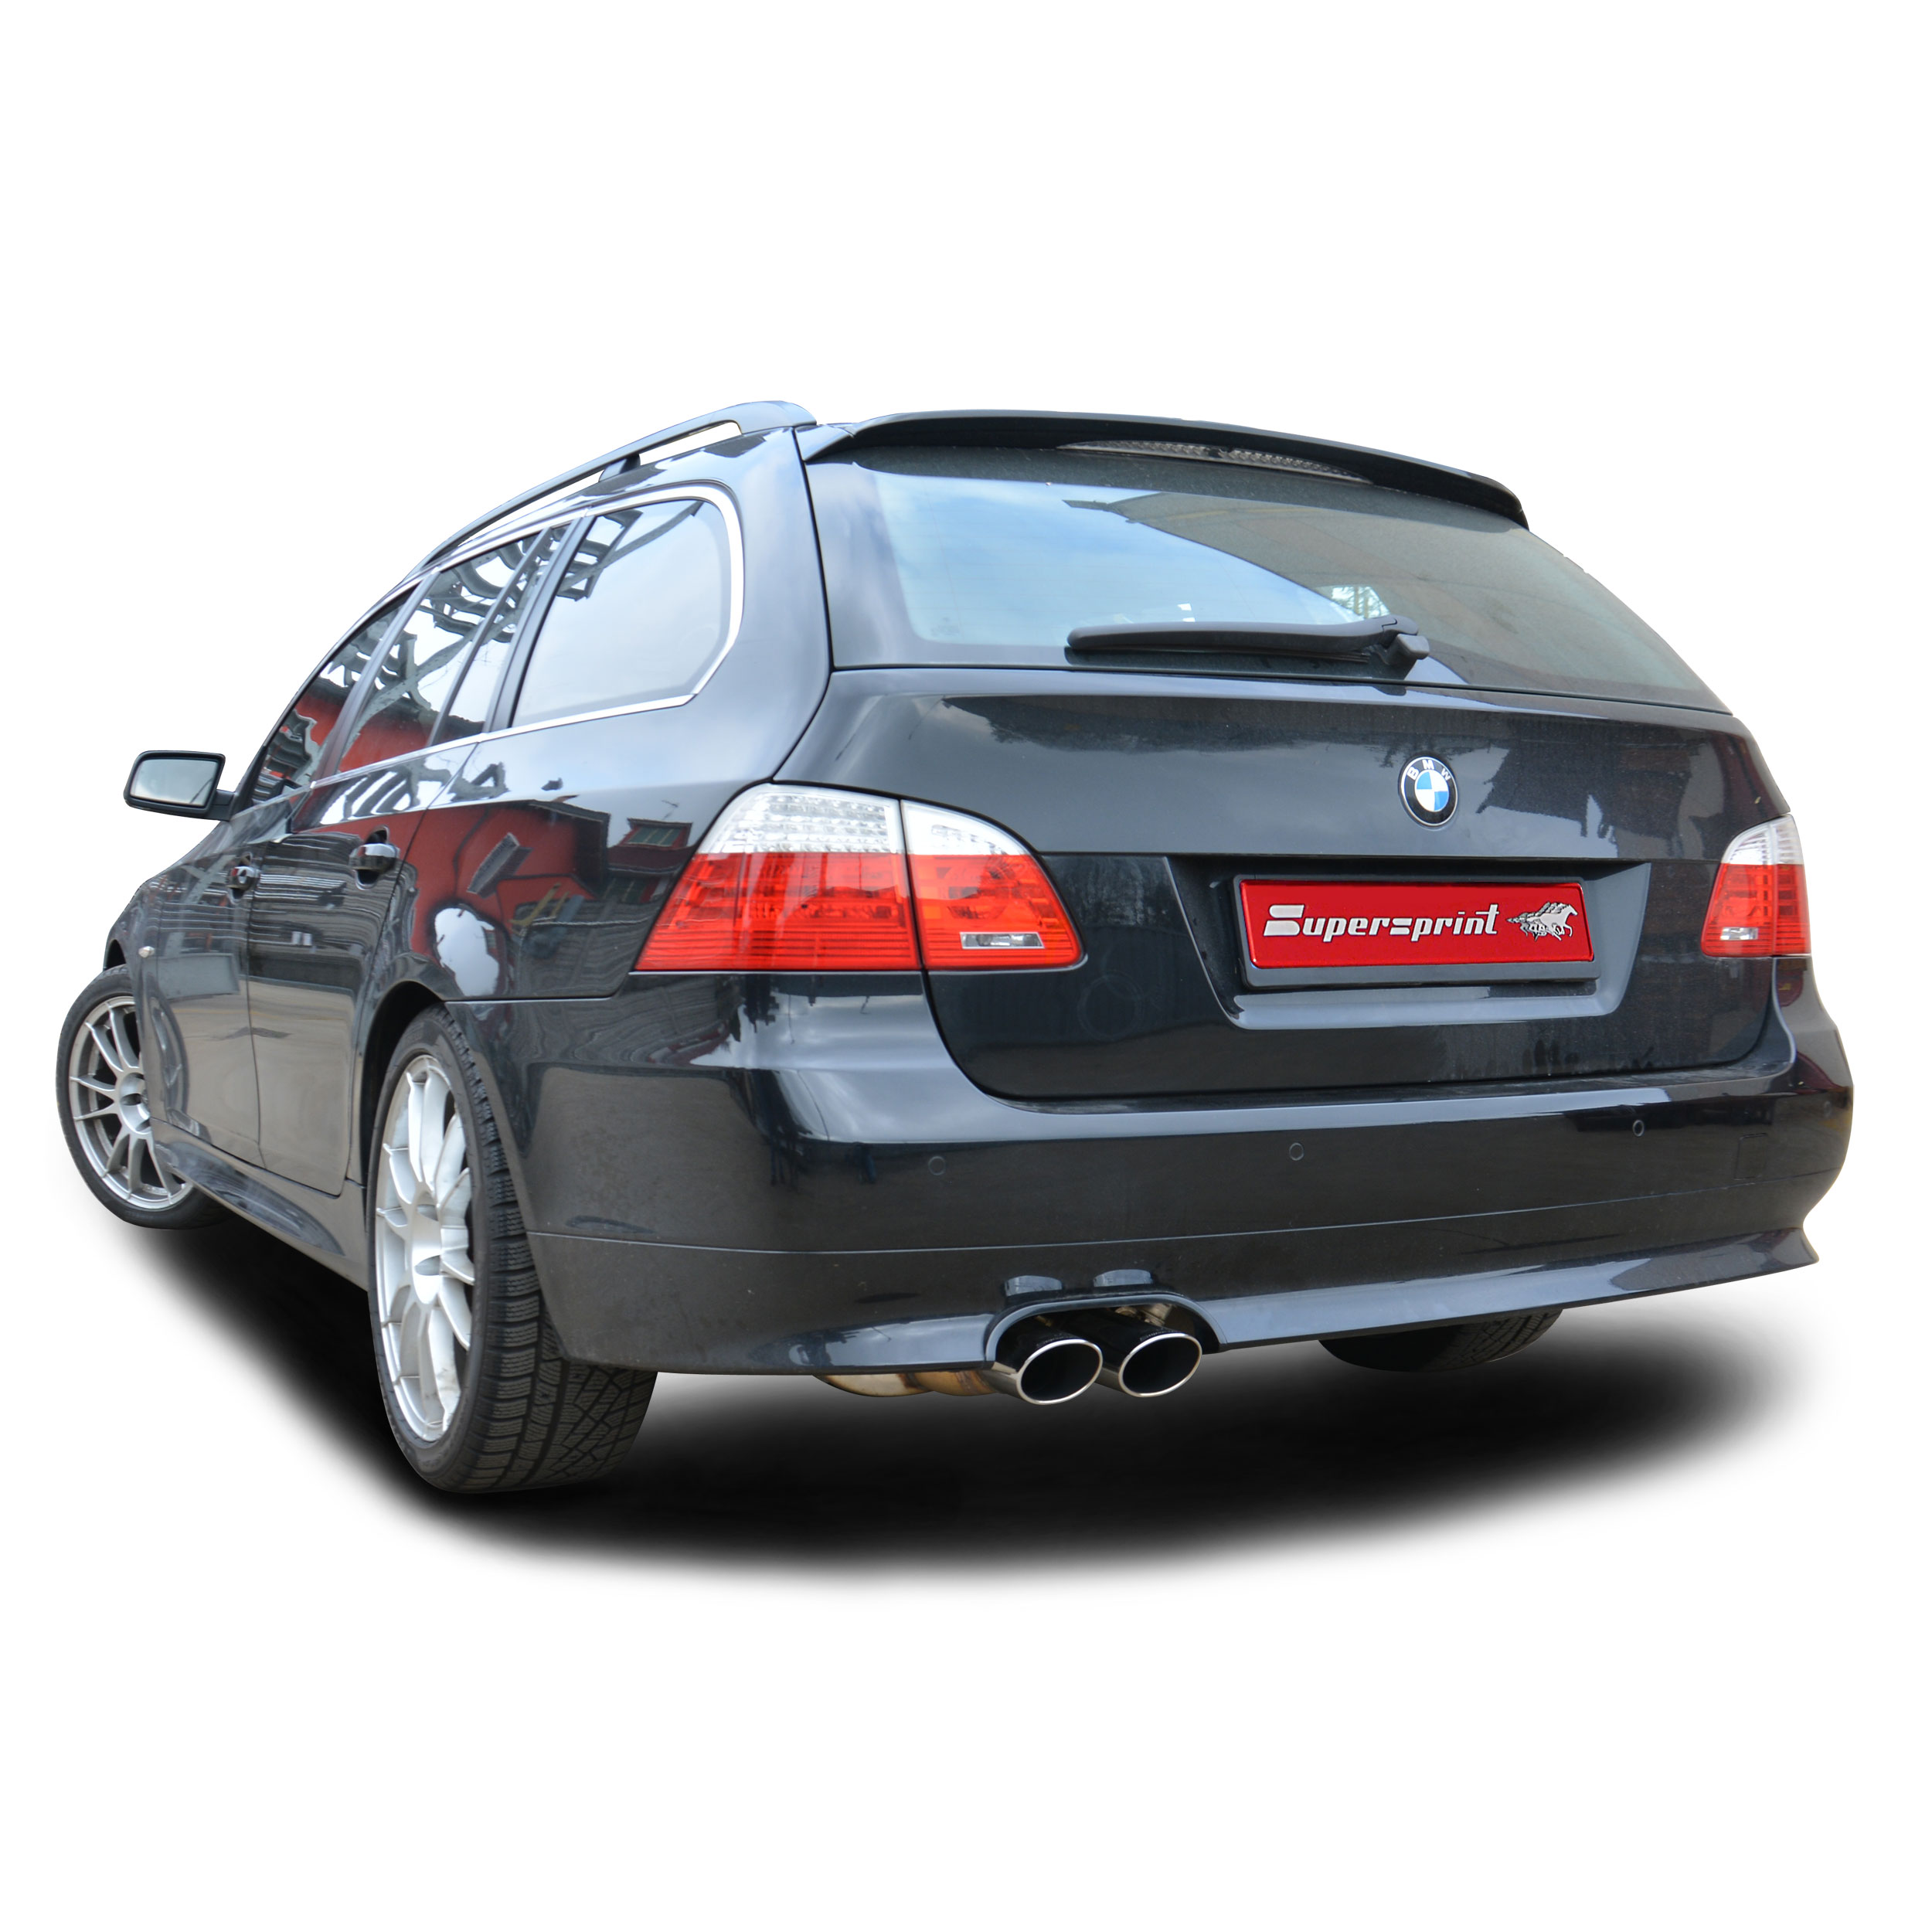 Alpina BMW - ALPINA B5 S (E60 - E61)(Sedan - Touring) 4.4i V8 (530 Hp) 2007 -> 2010